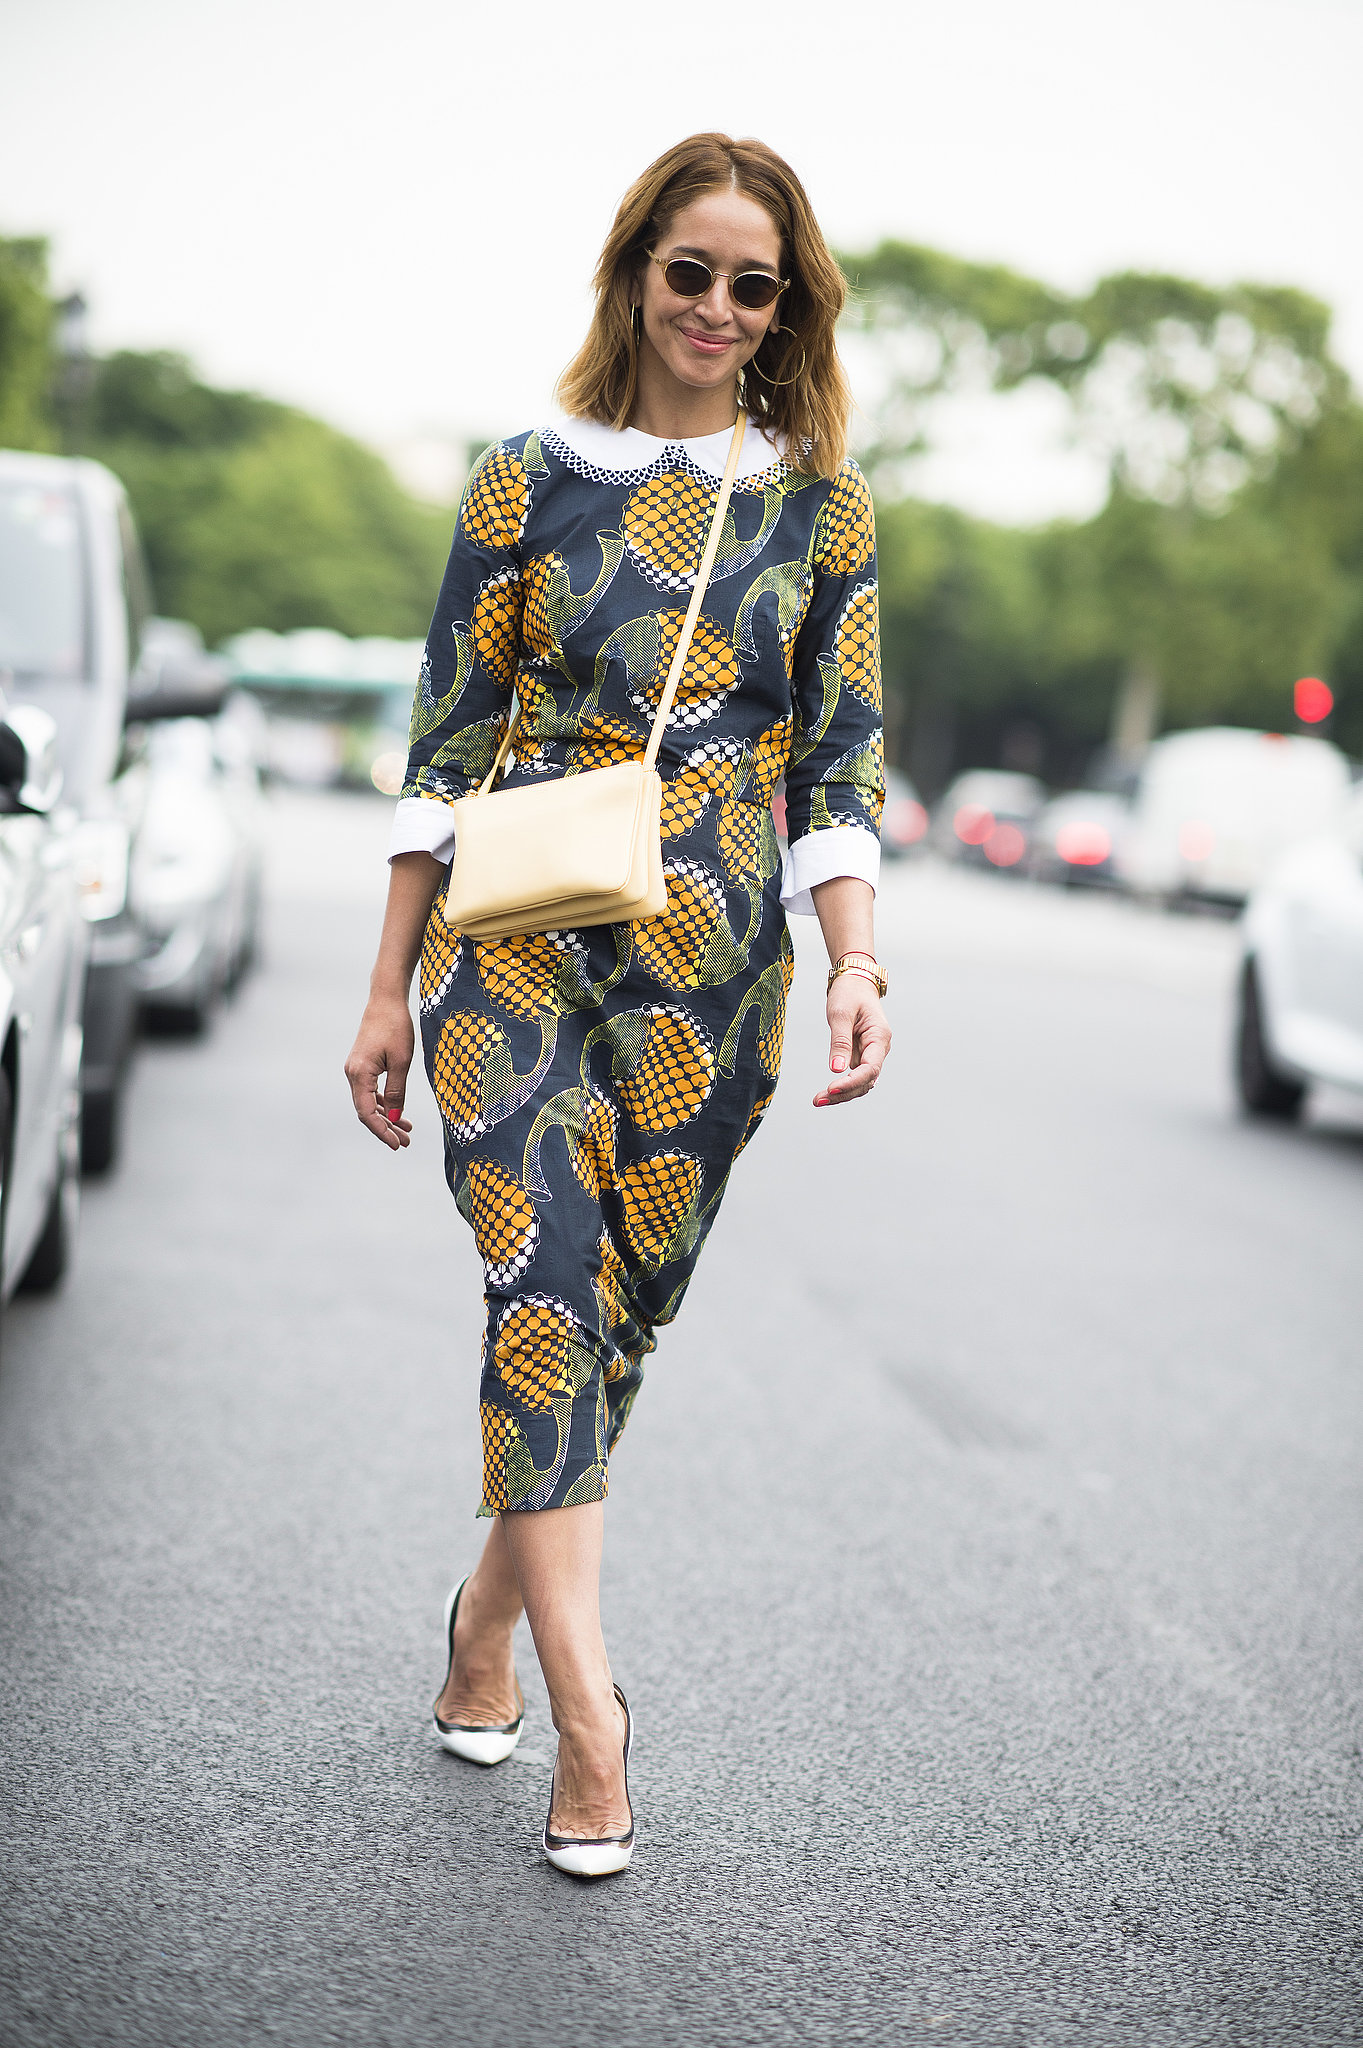 Fresh pineapples felt right at home on the streets of Paris when paired with chic ivory accessories. Source: Le 21ème | Adam Katz Sinding